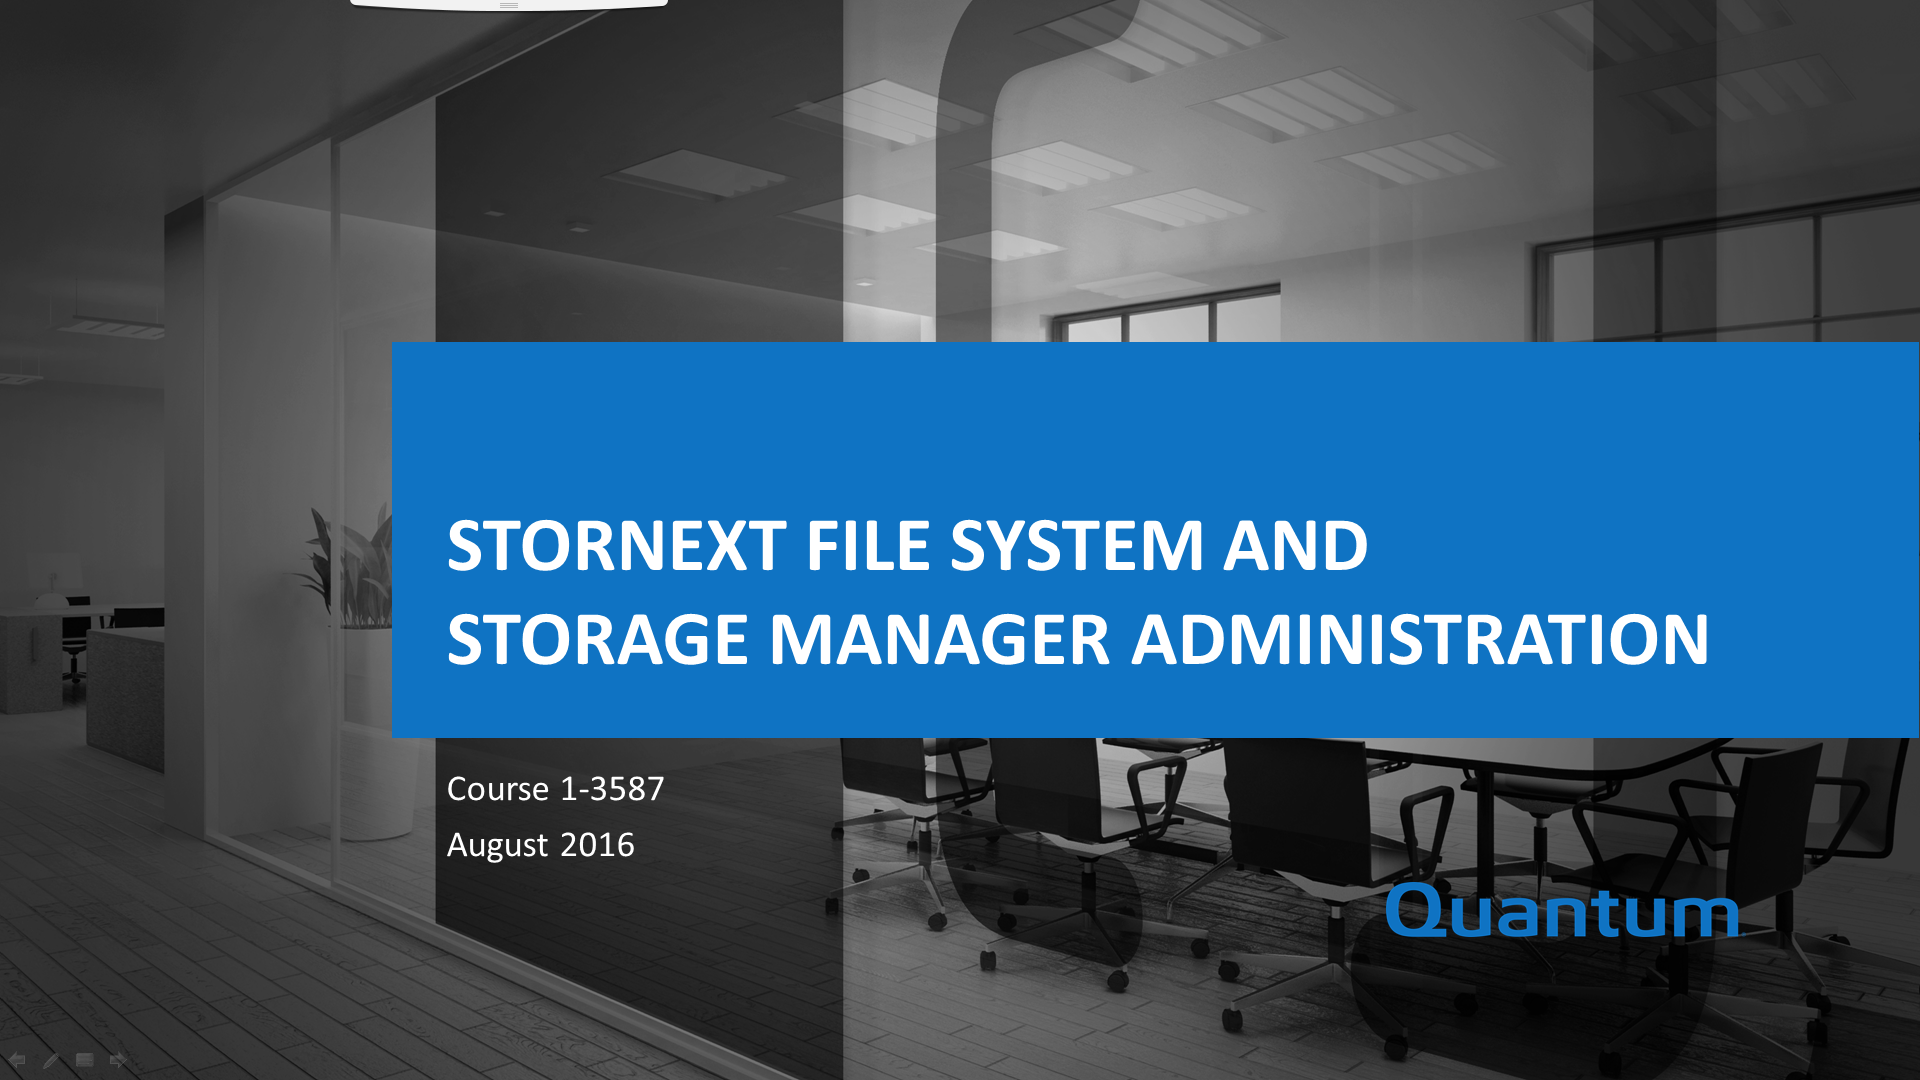 The Tasks Include Configuring Stornext Defining Storage Policies Using Tools And Commands Managing Files Performing Library Media Operations